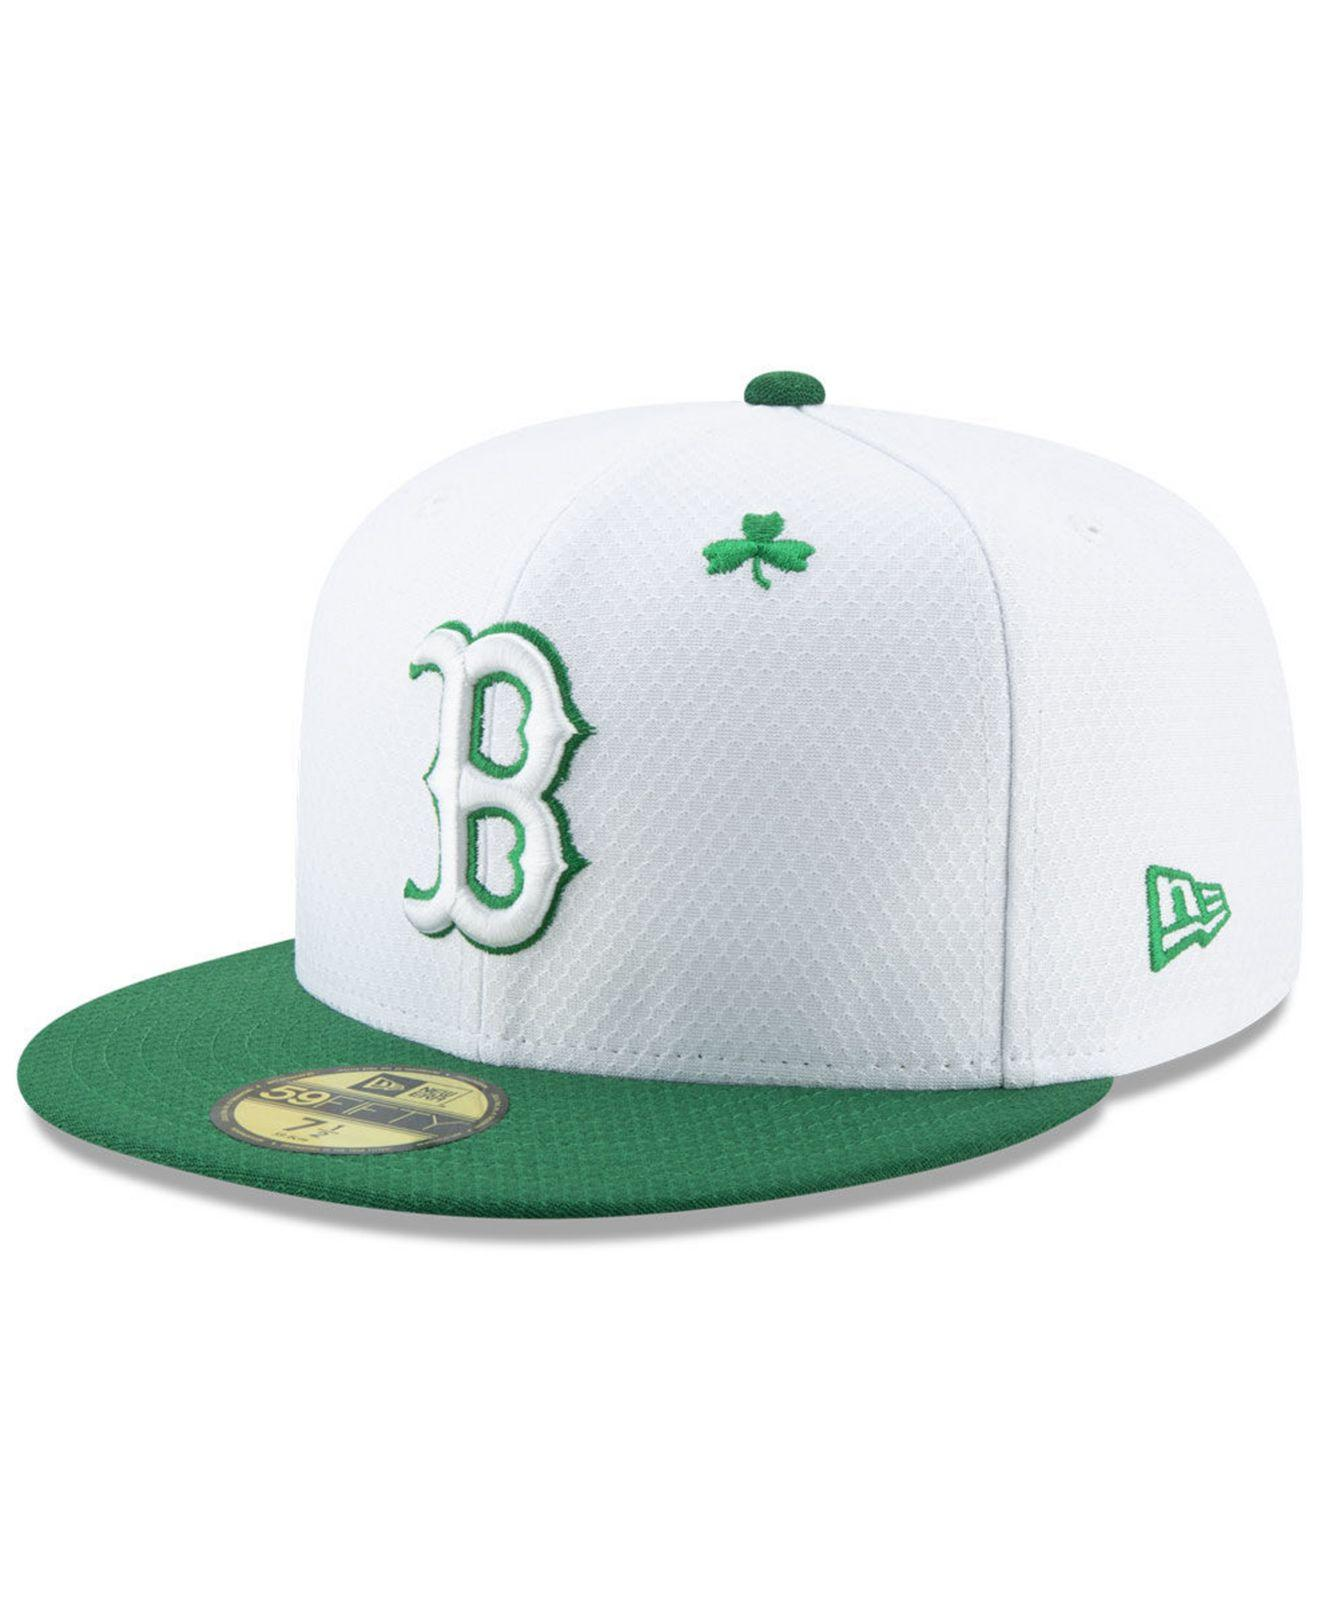 Lyst - KTZ Boston Red Sox St. Pattys Day 59fifty-fitted Cap in Green ... 4c7d7da82f88